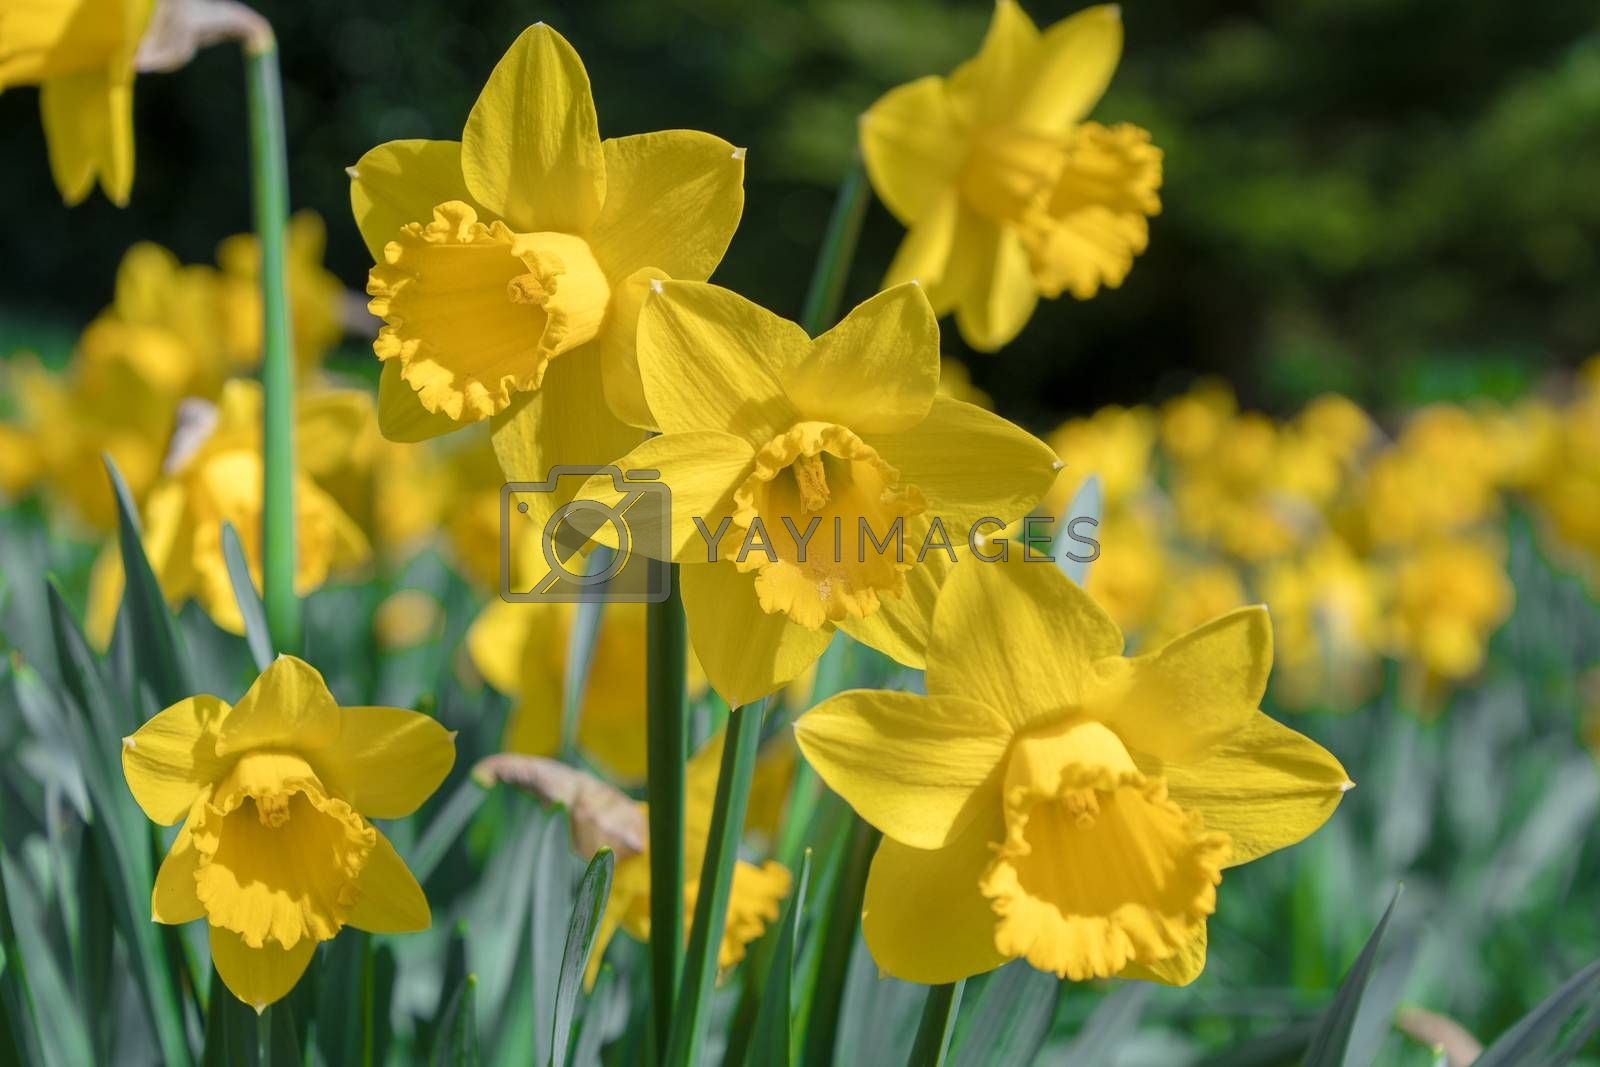 Yellow daffodils growing in a field